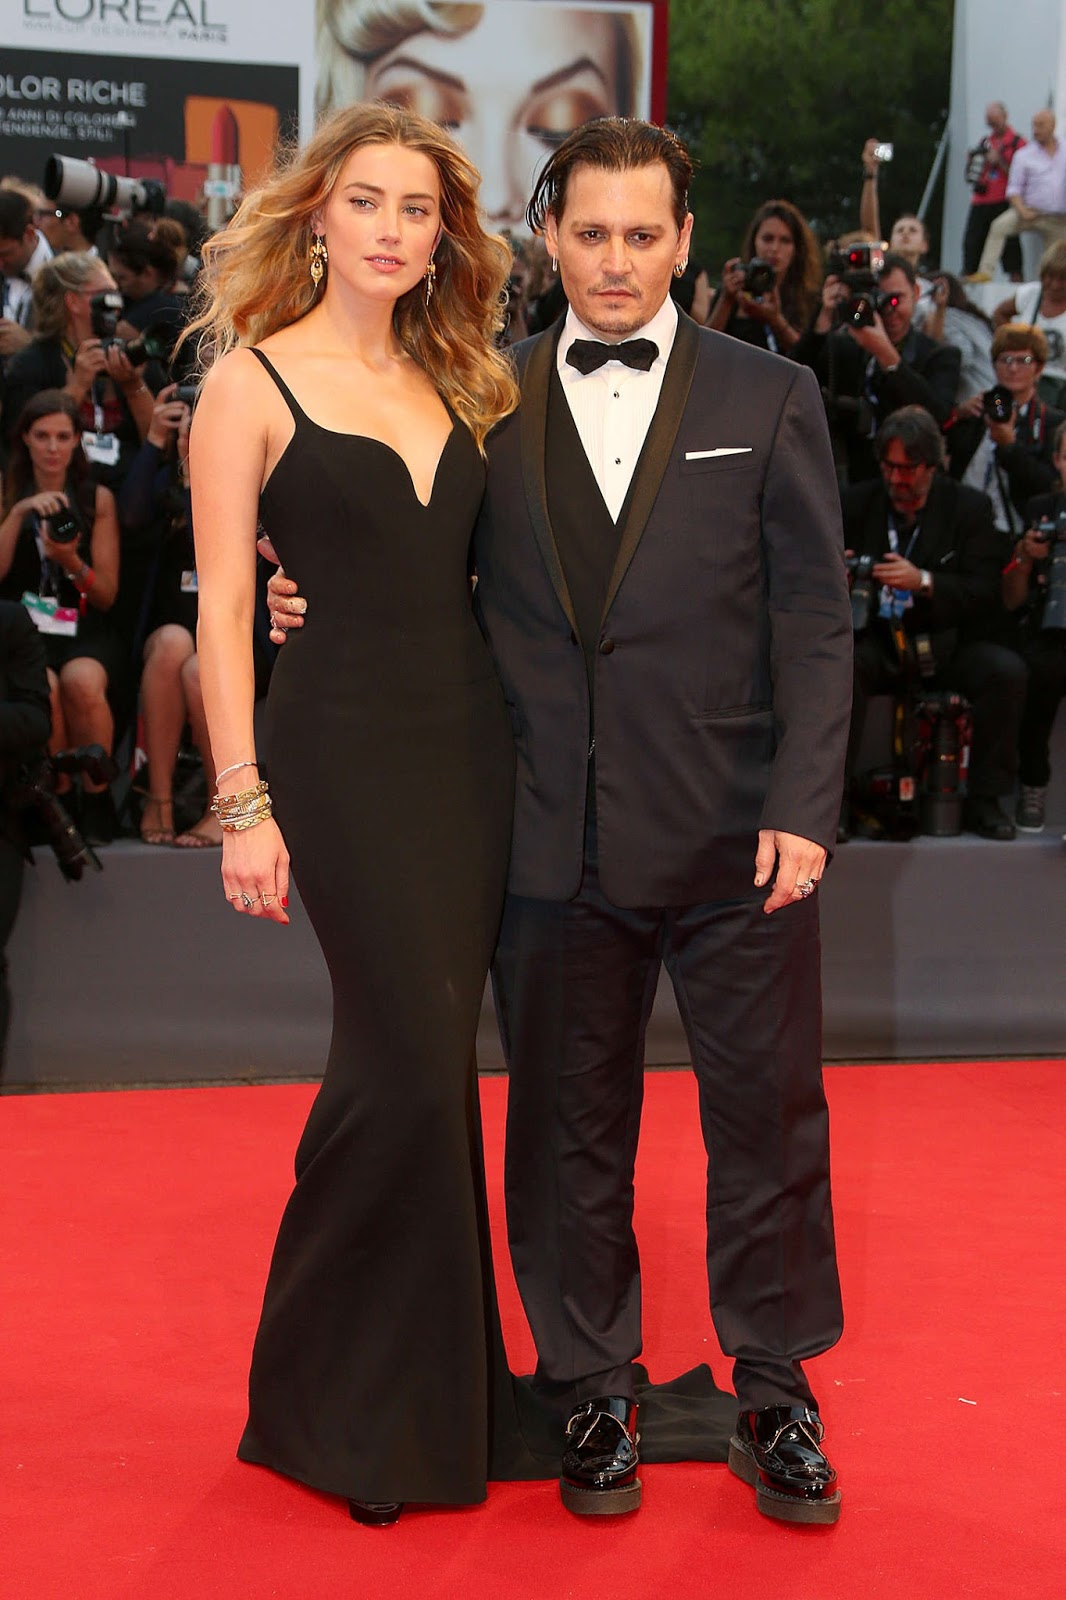 Amber Heard and Johnny Depp are stunning at the 'Black Mass' Venice premiere